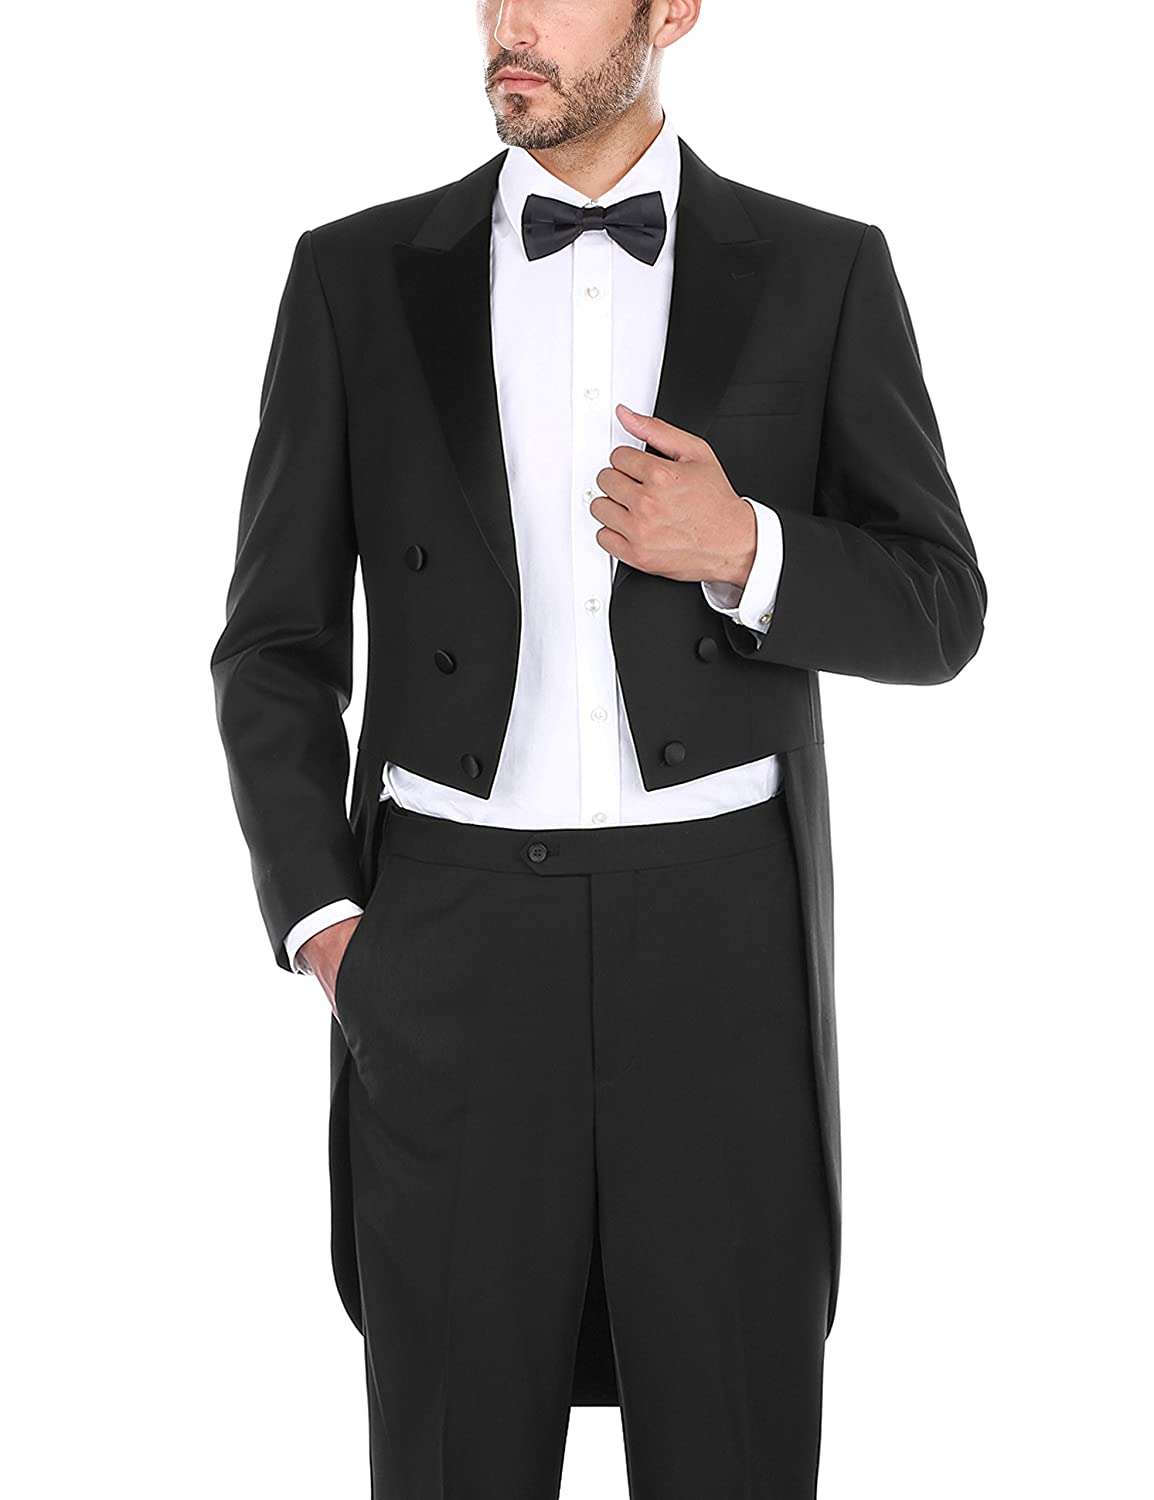 Chama 2 Piece Men's Classic Fit Black Tuxedo Tailcoat Tail Coat Suit, Suit Tuxedo Jacket Blazer, Suit Tuxedo Pants